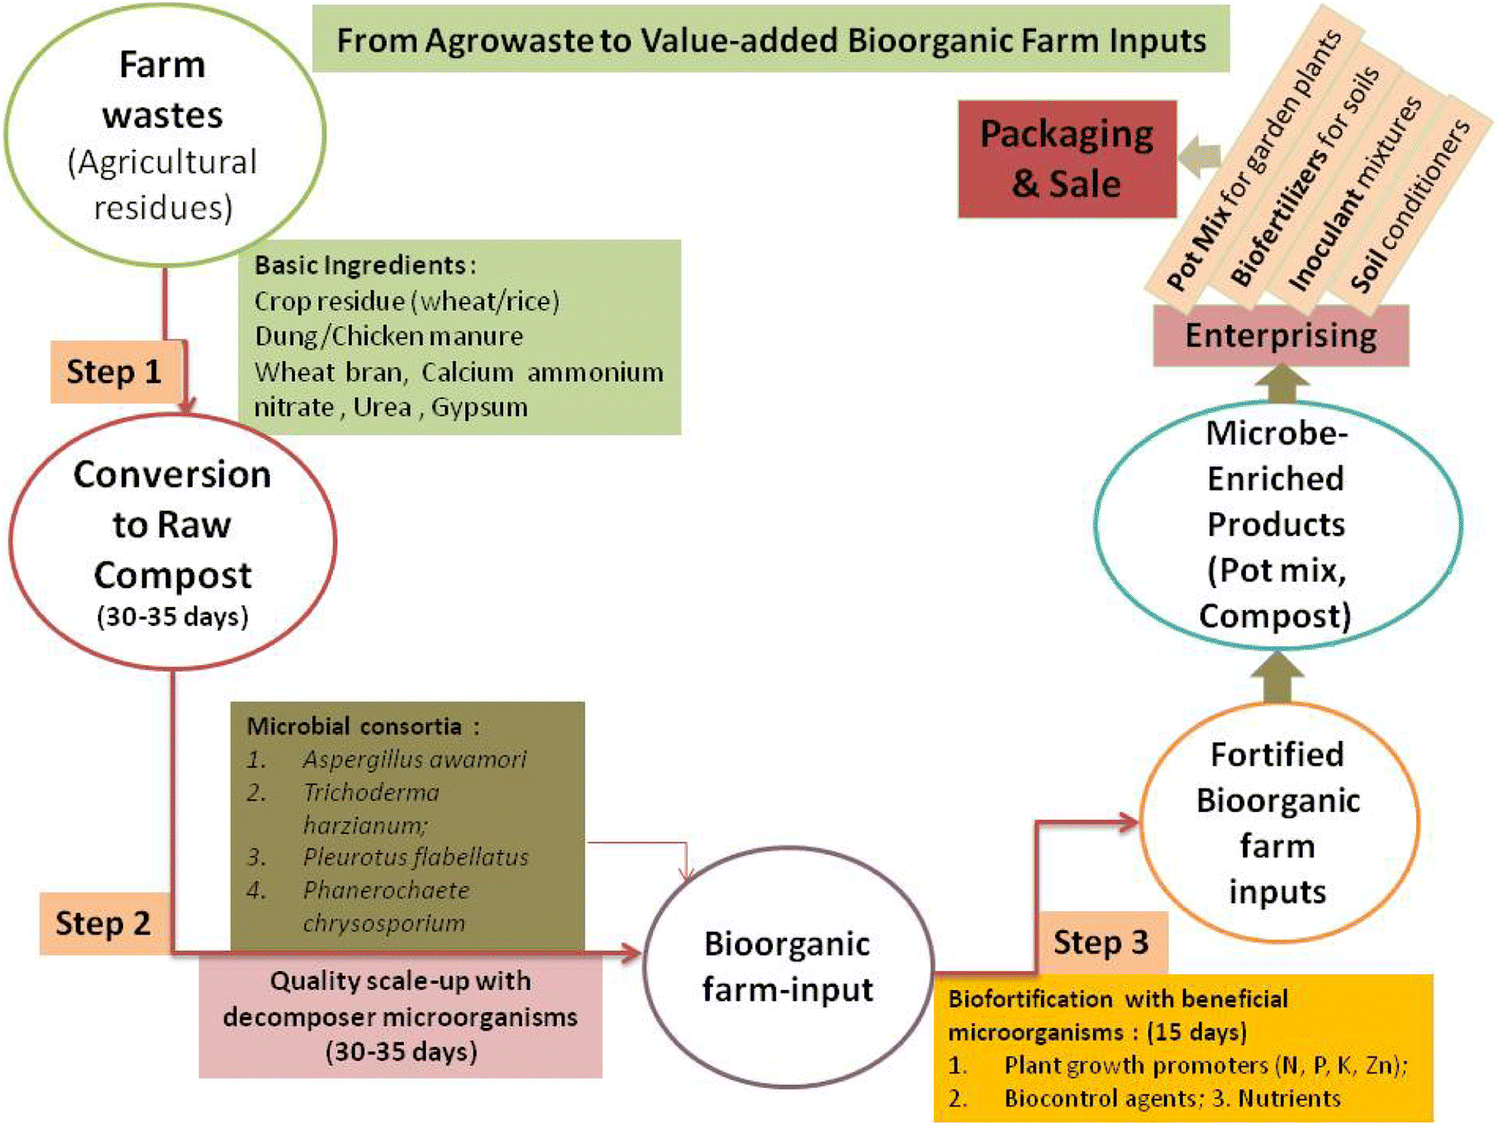 Agrowaste bioconversion and microbial fortification have